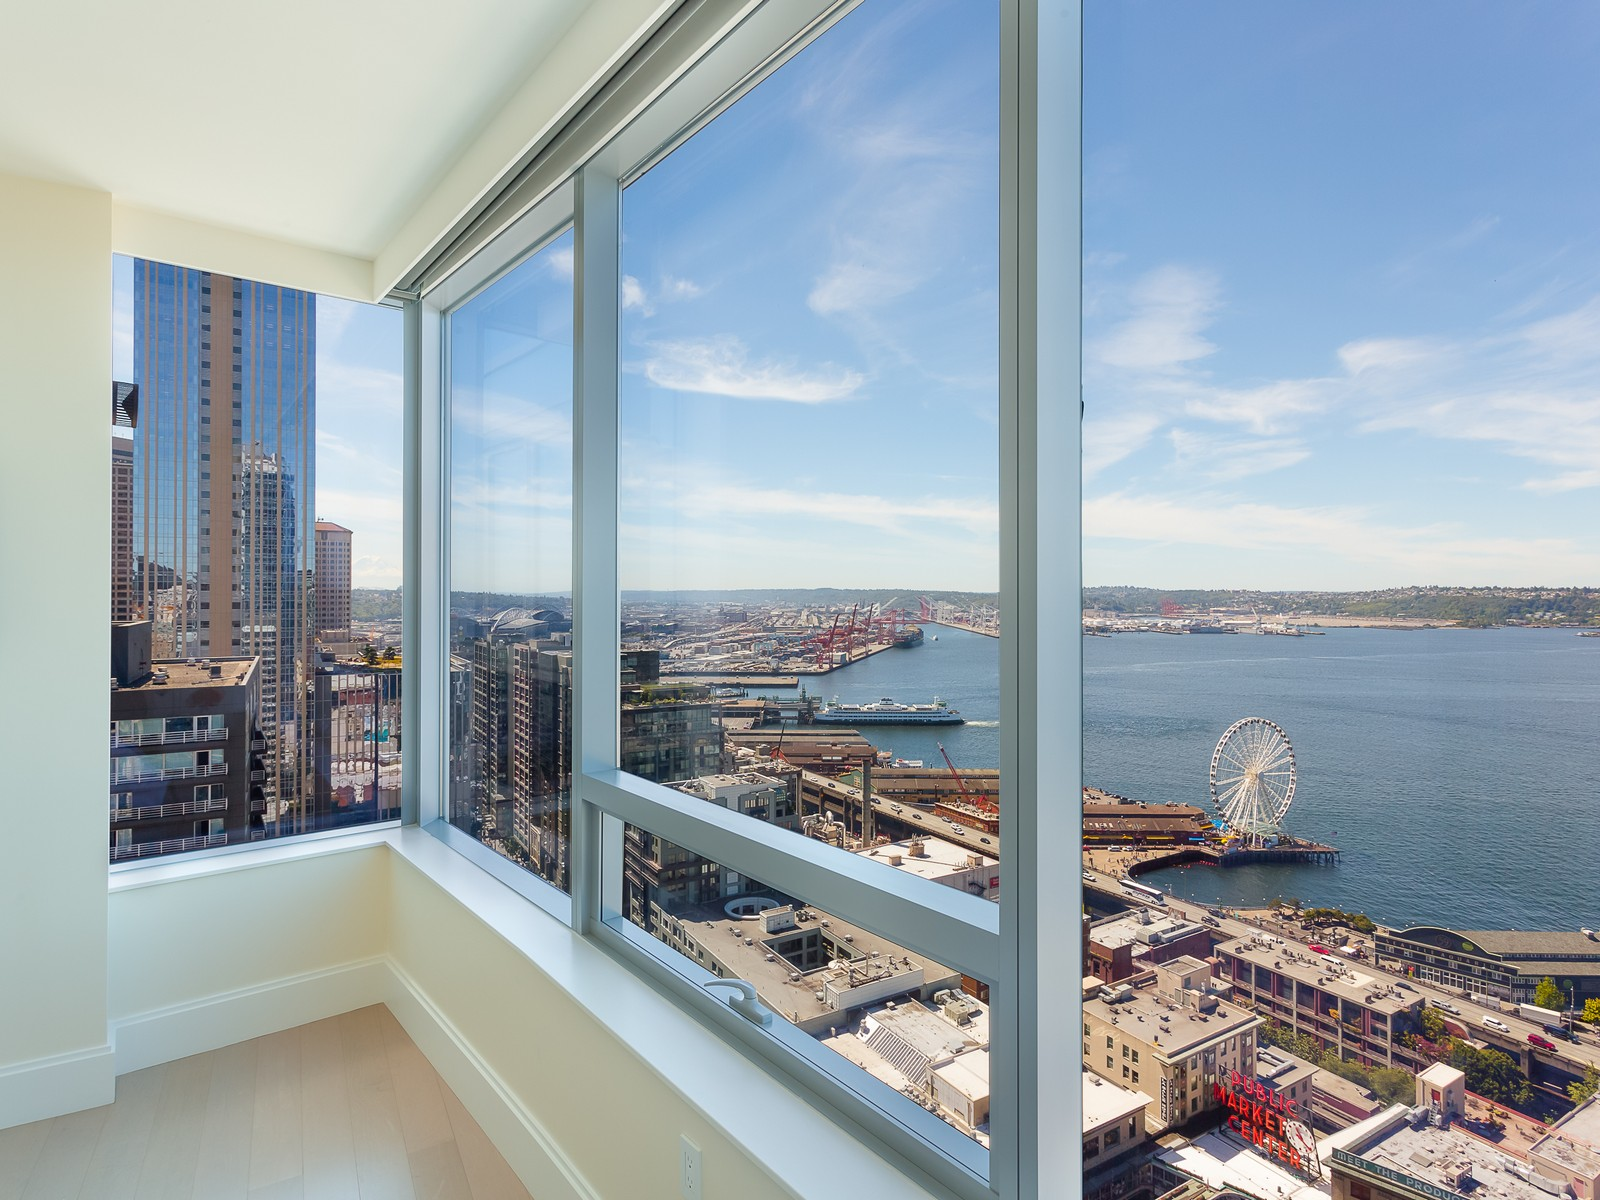 Ordinaire Excellent Seattle Luxury Apartments The View From A Million Two Bedroom  Oneandahalf Bathroom Condo In Downtown Seattle View Full Listing Realogics  Realty ...